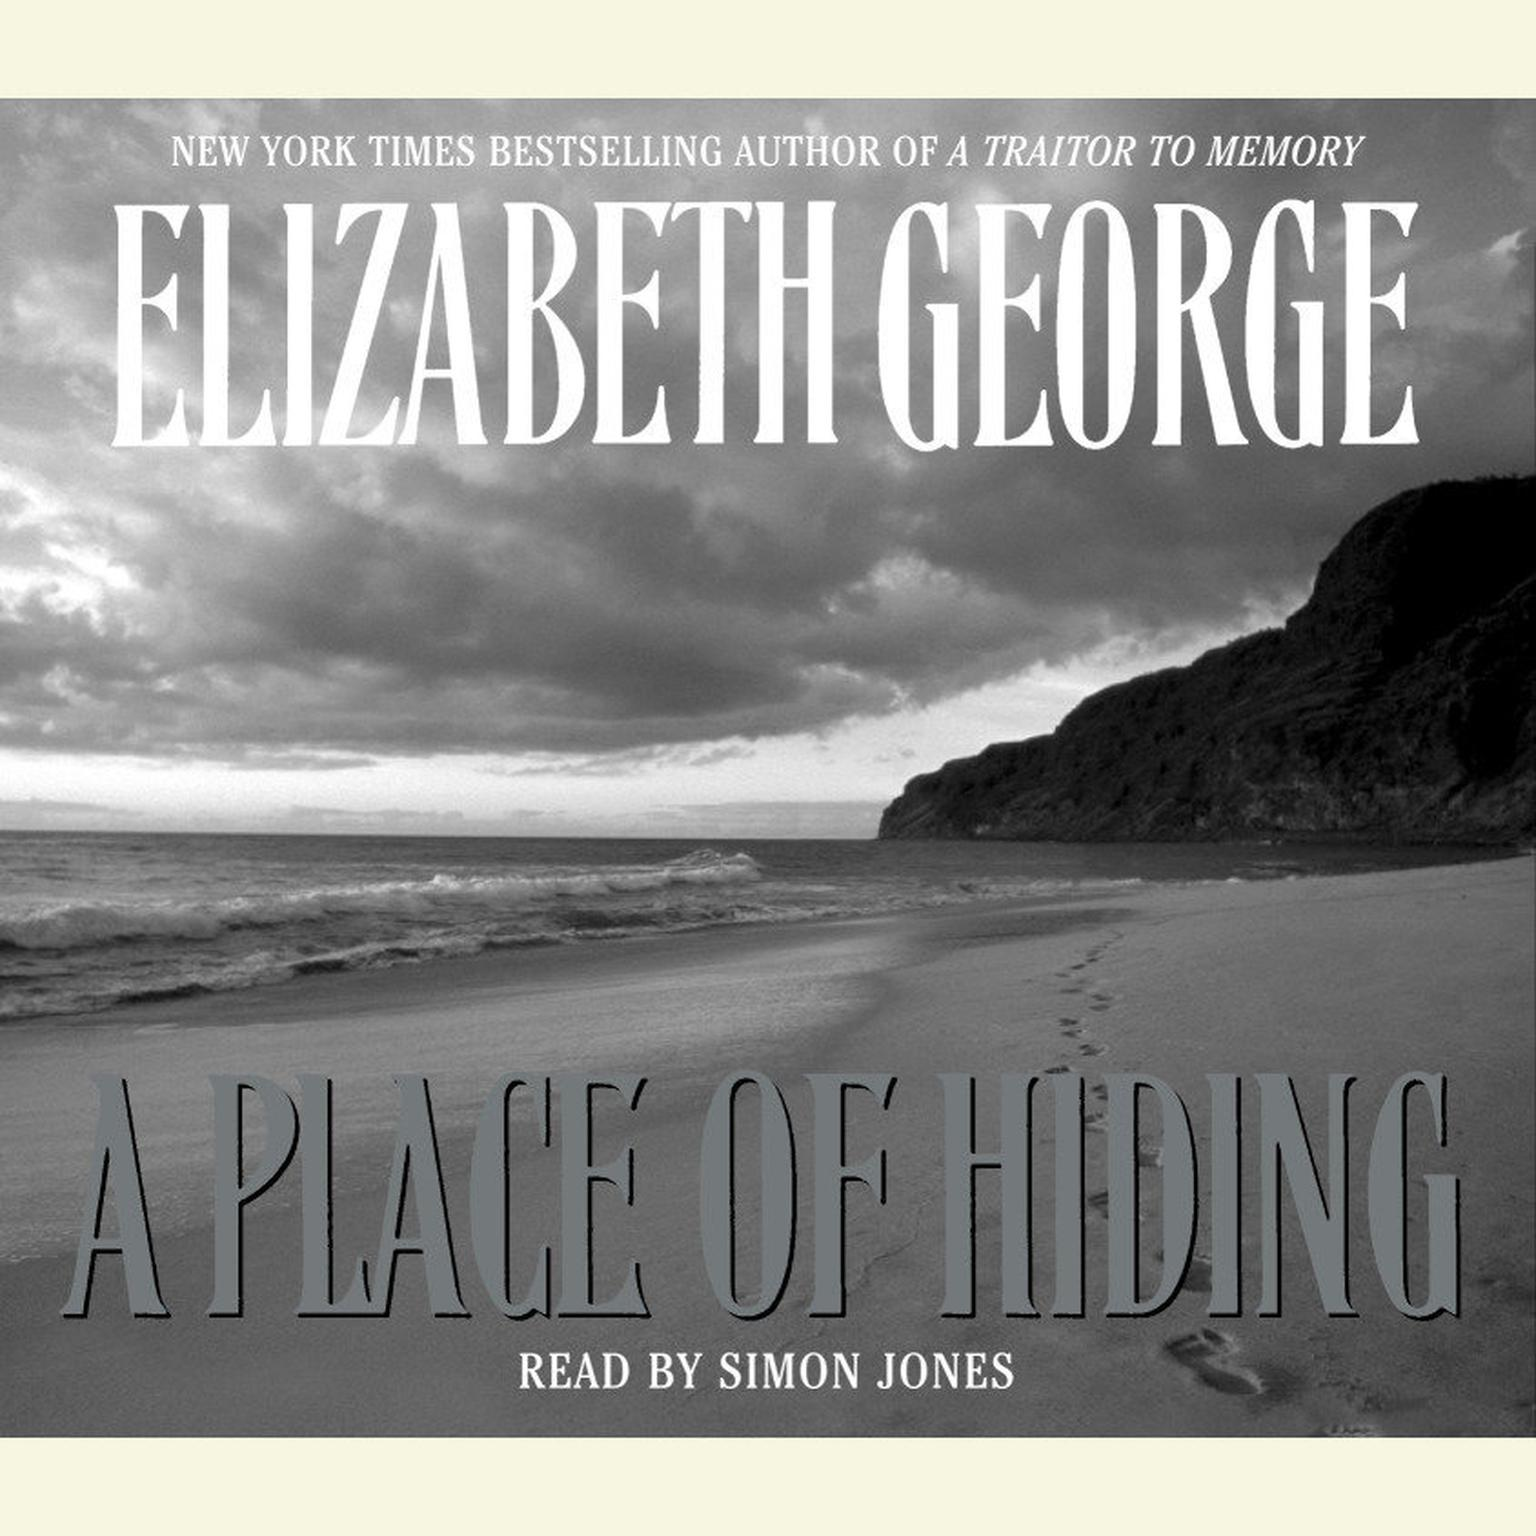 Printable A Place of Hiding Audiobook Cover Art